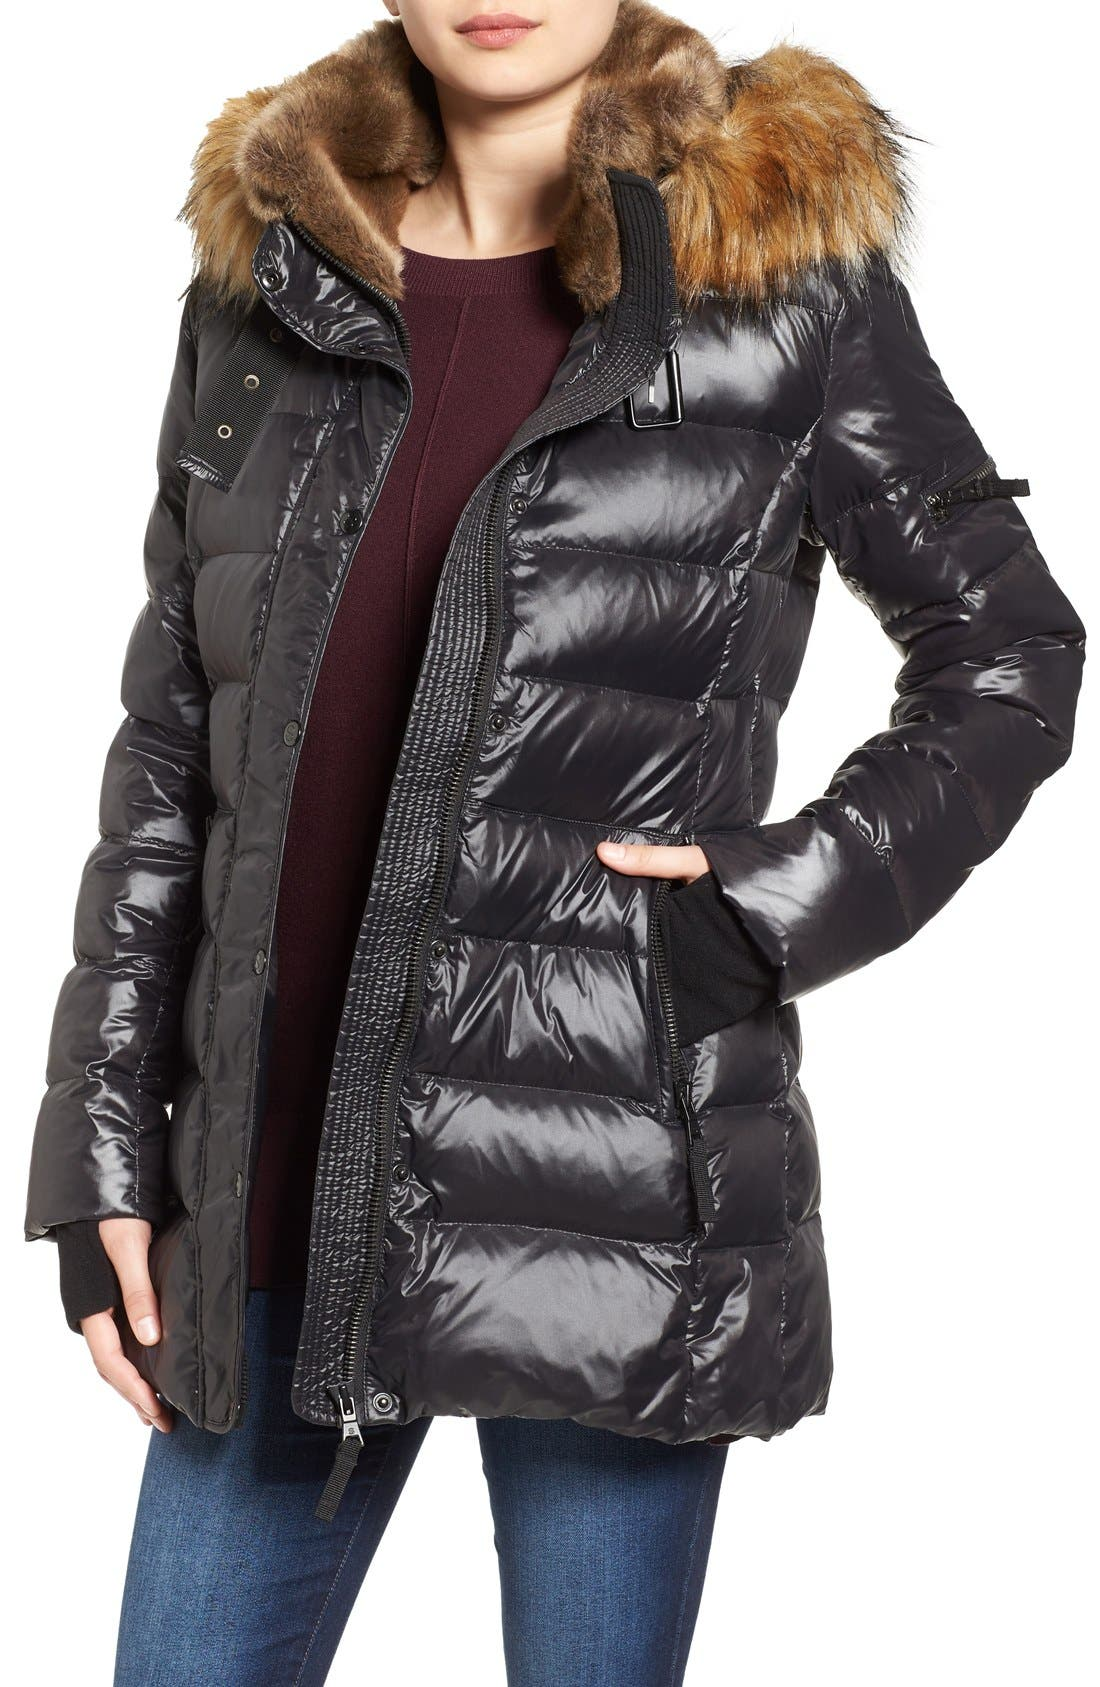 'Chelsea' Gloss Down Jacket with Removable Hood and Faux Fur Trim,                             Main thumbnail 1, color,                             002